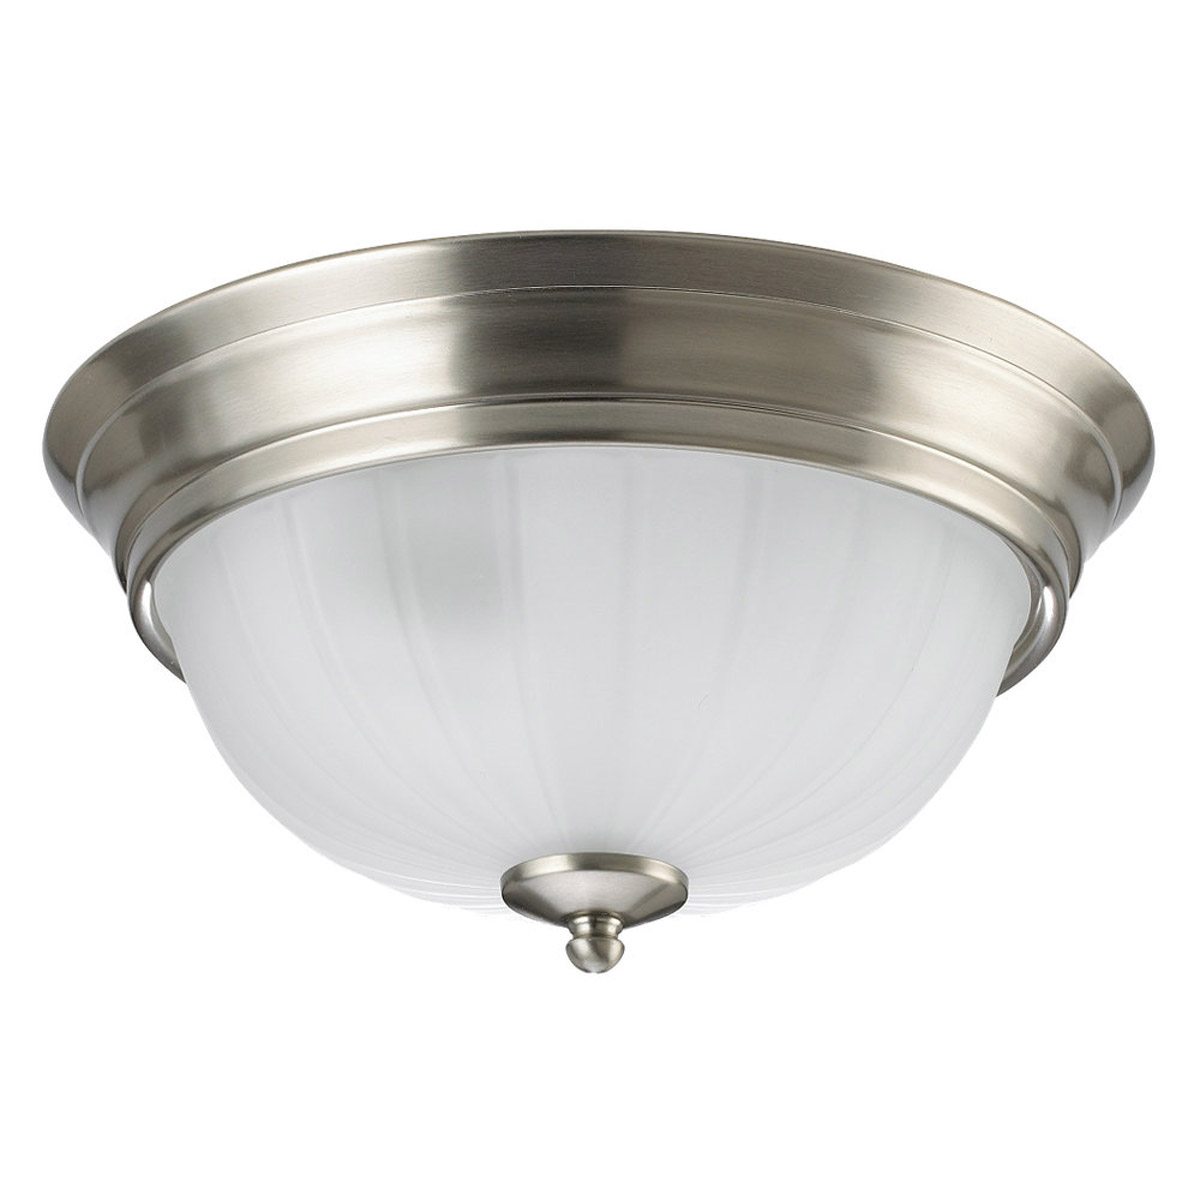 Sea Gull Lighting Linwood 2 Light Flush Mount in Brushed Nickel 7505-962 photo